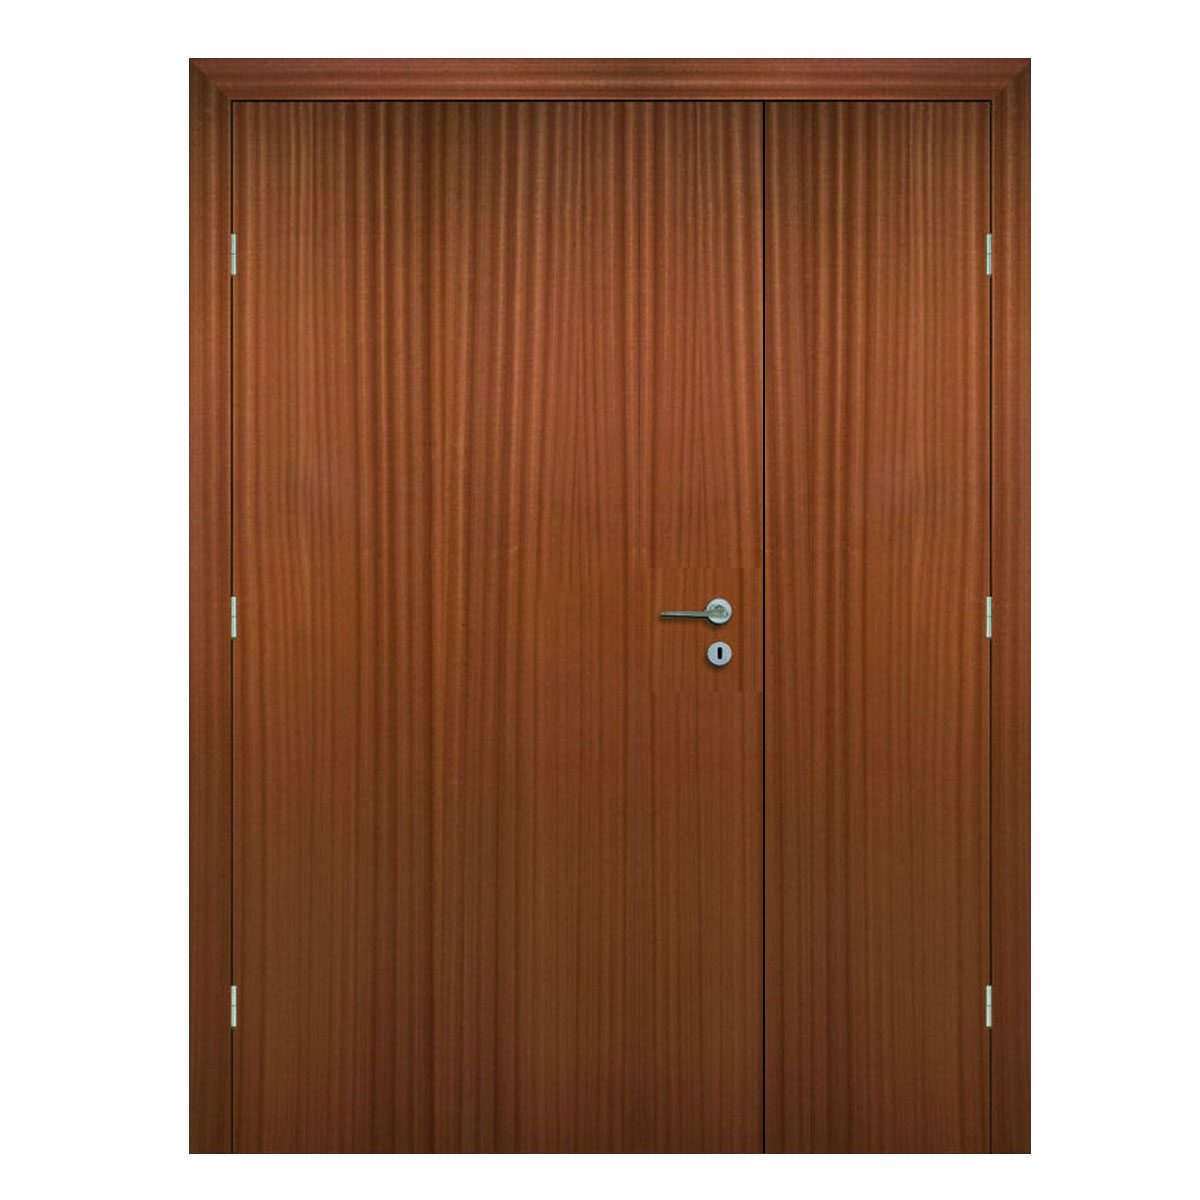 Sapele Hospital Doors